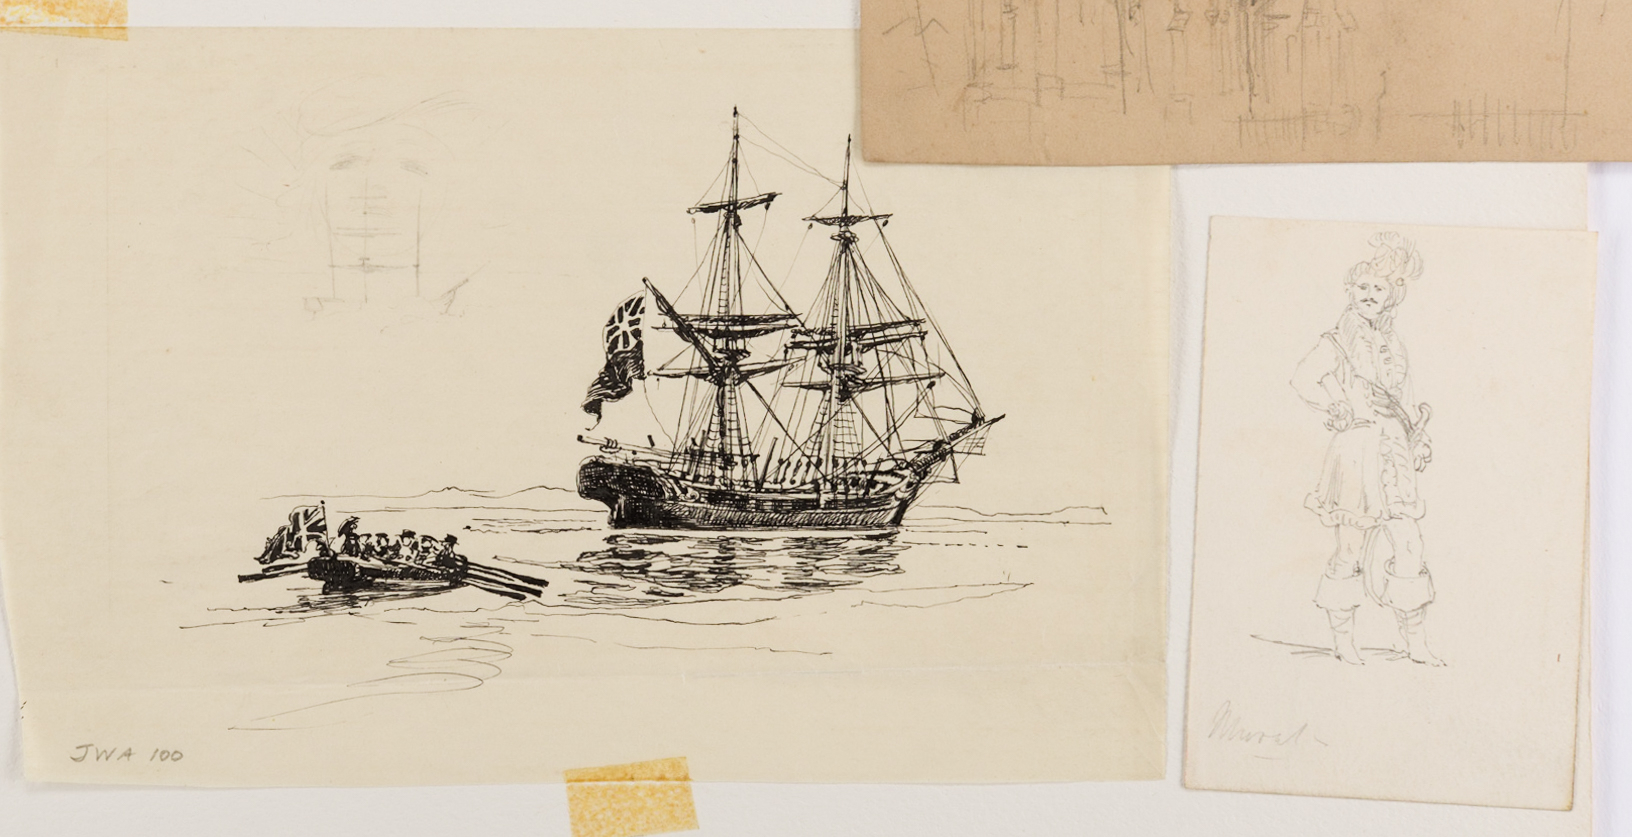 Lot 749: Archive of Alfred Waud Sketches and Notes, 50 plus items